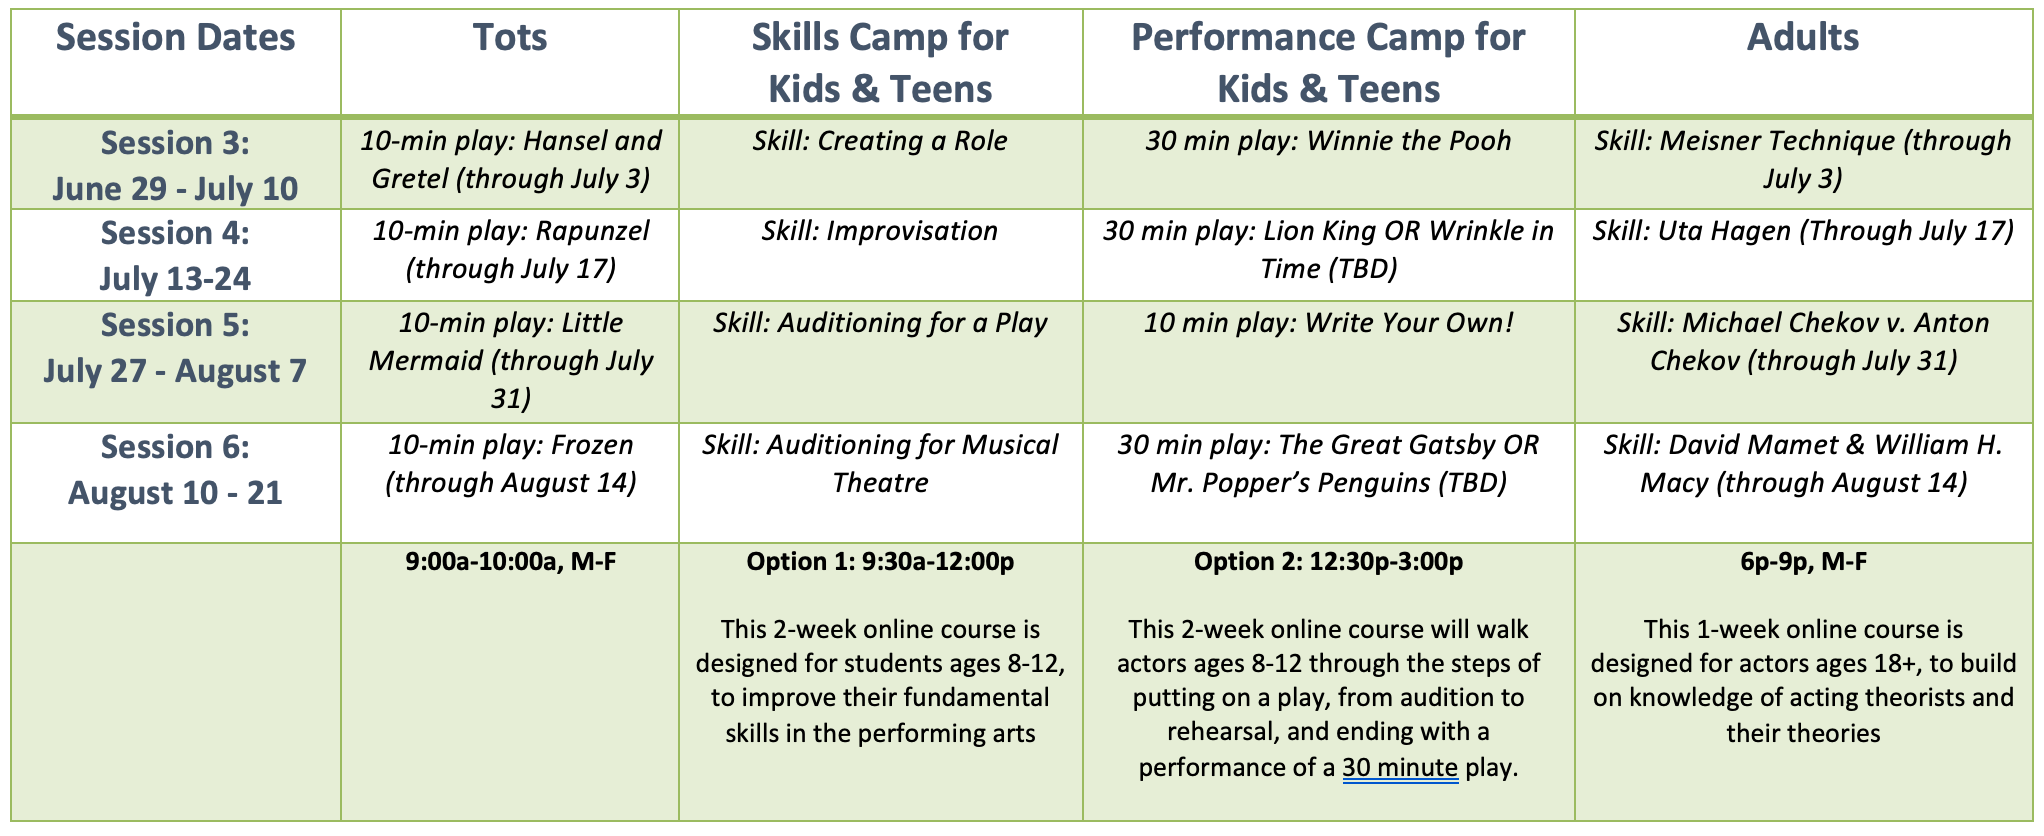 Summer Camp Sessions 3-6